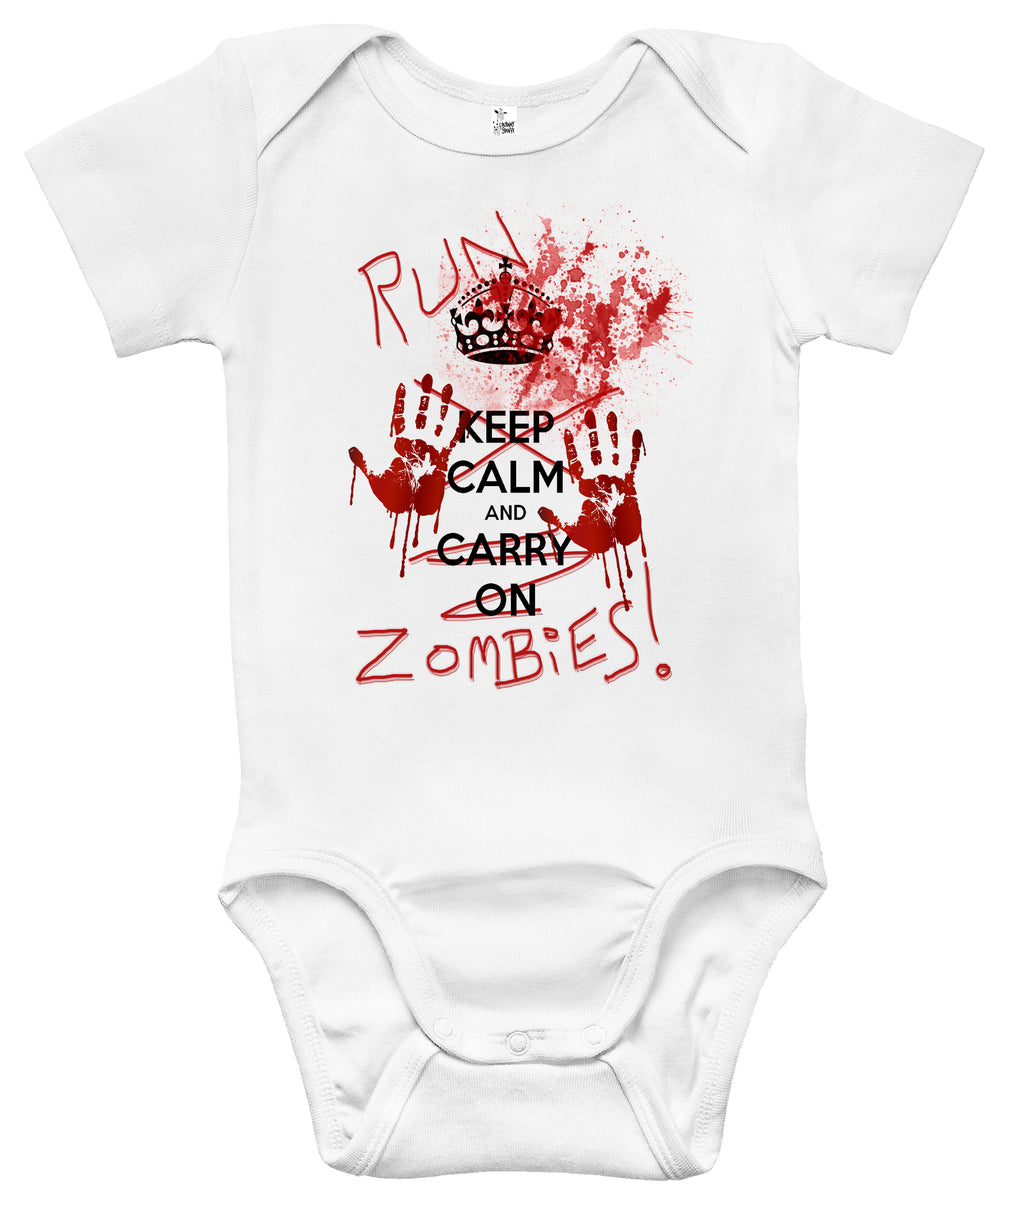 Baby Bodysuit - Run Zombies